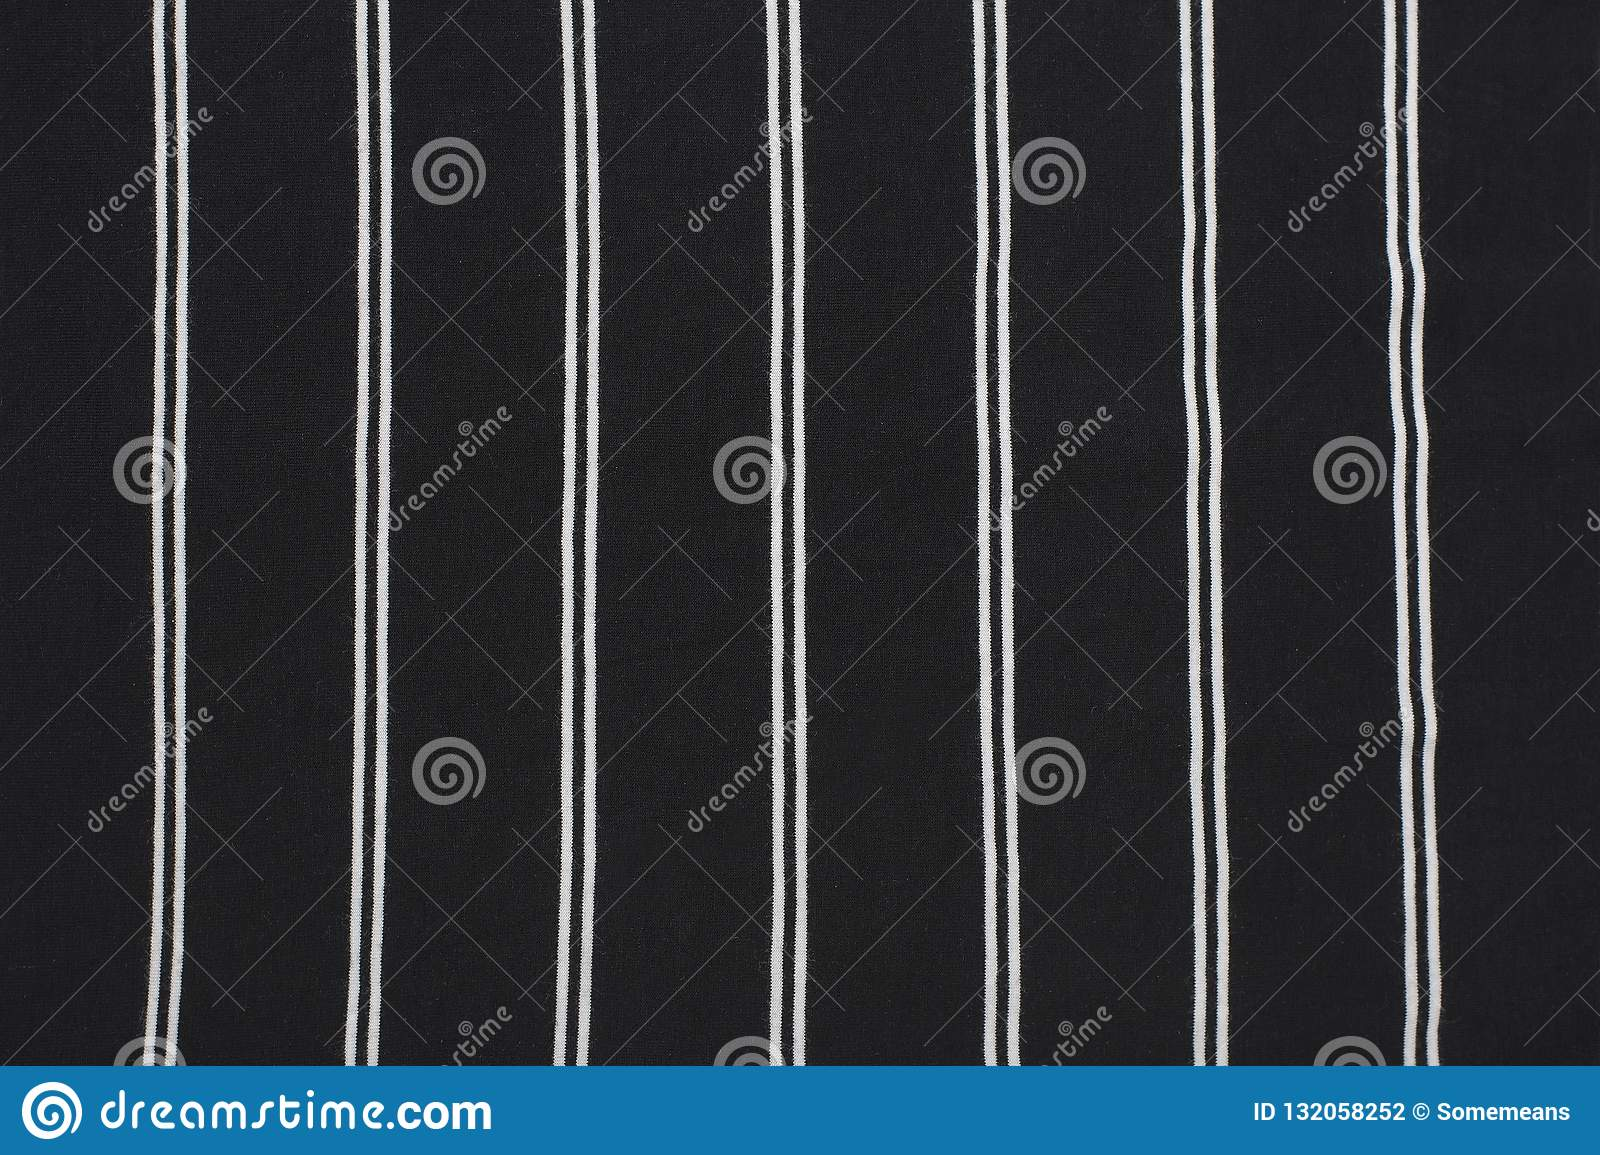 Black And White Striped Fabric Close Up Fashionable Concept Stock